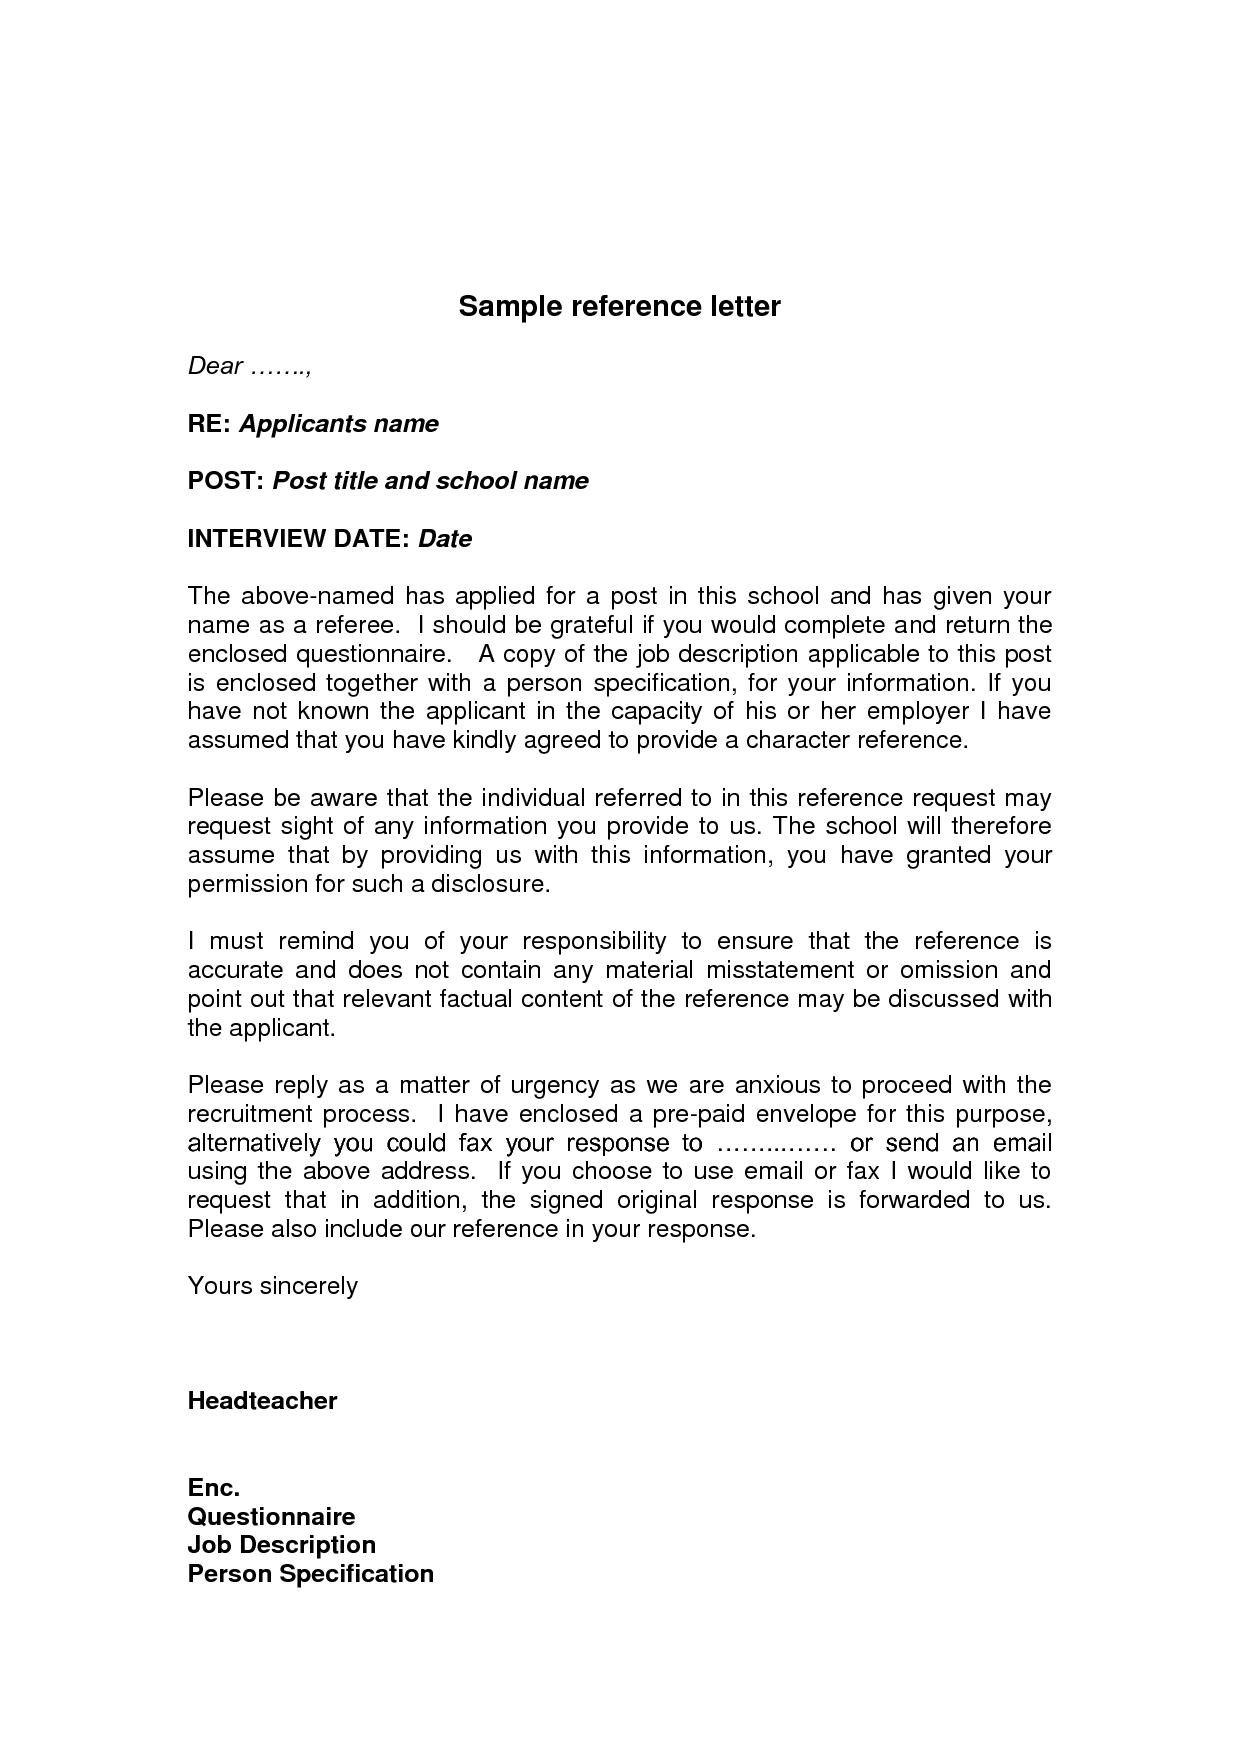 Sample Reference Letter 14+ Free Documents in Word